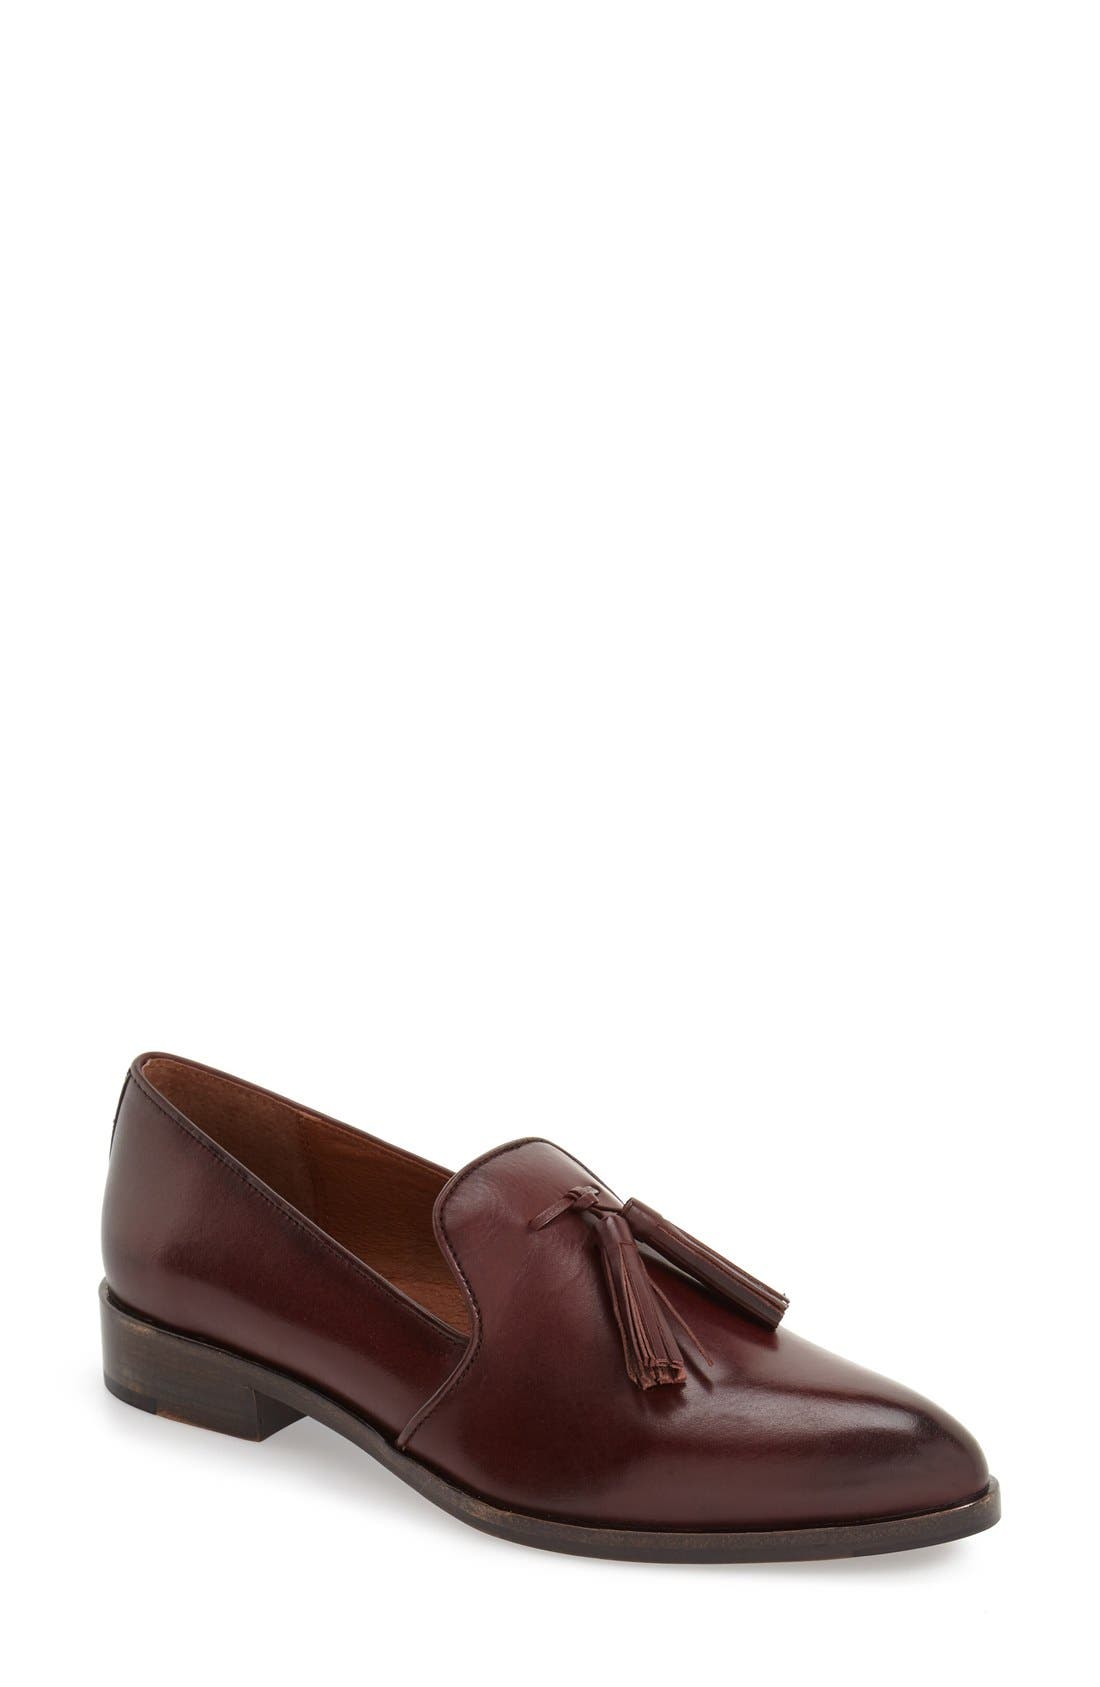 Frye Loafers Womens 28 Images Frye Women S Loafers